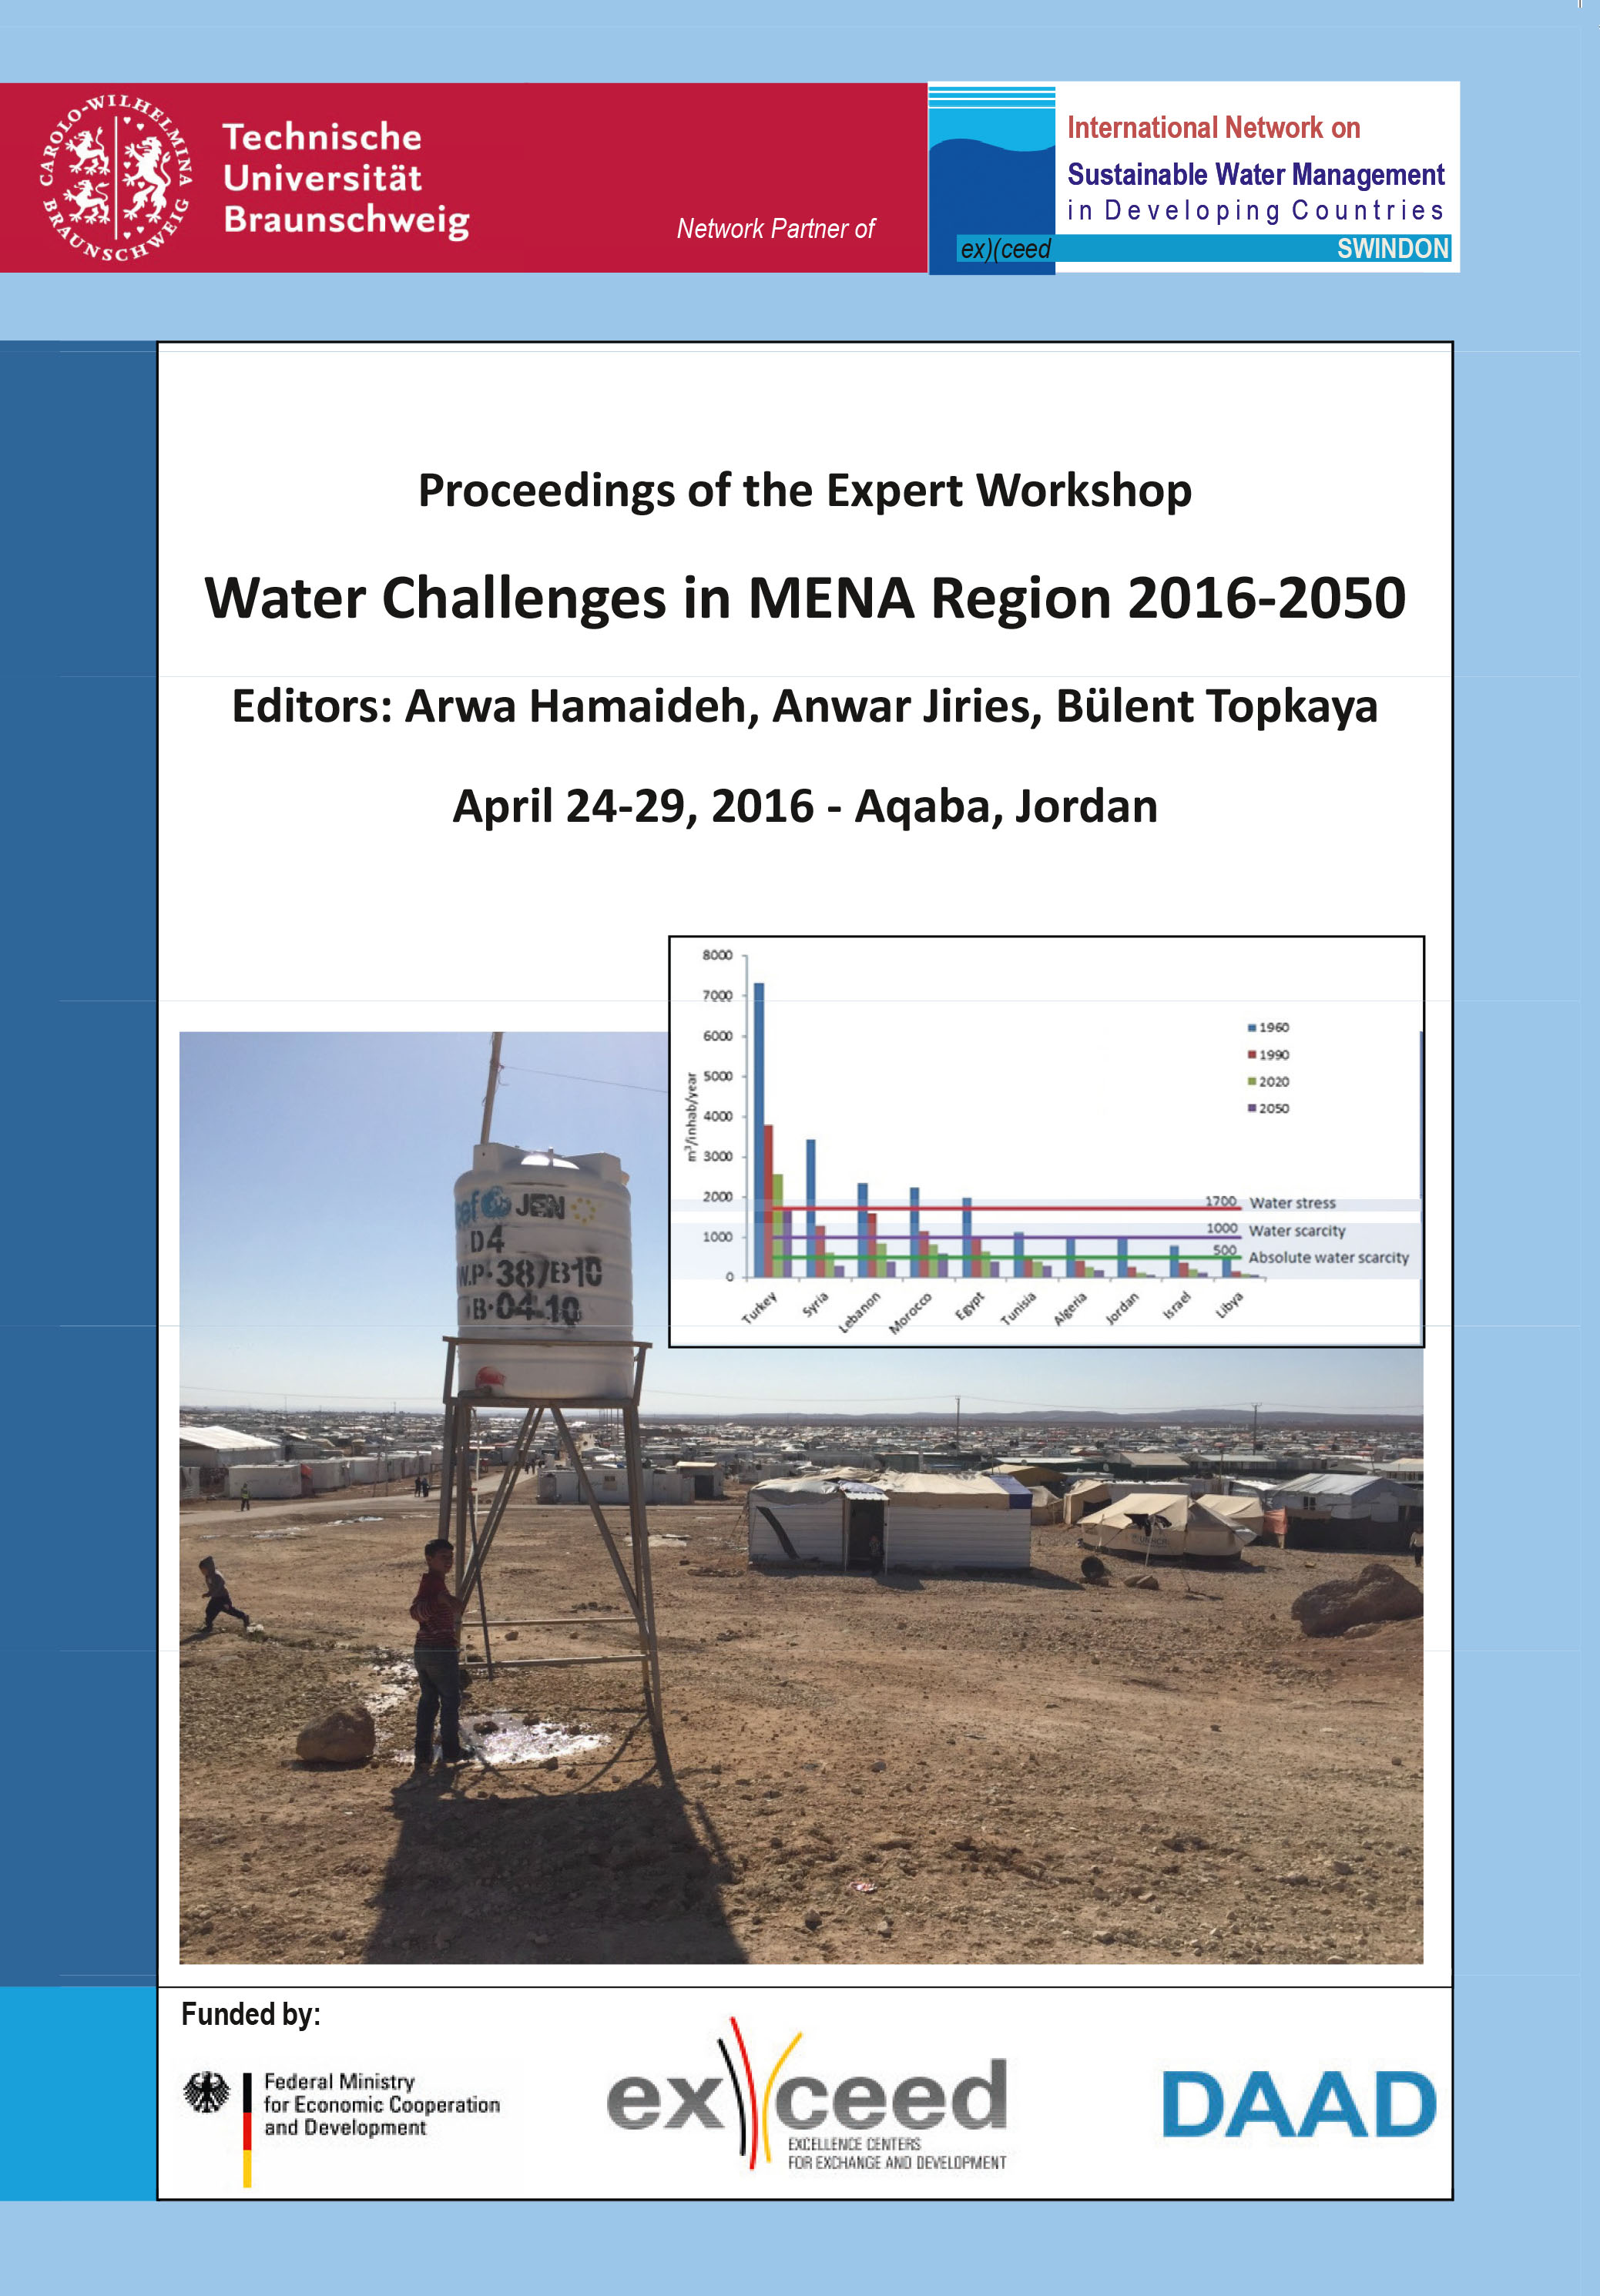 Water Challenges in MENA Region 2016-2050